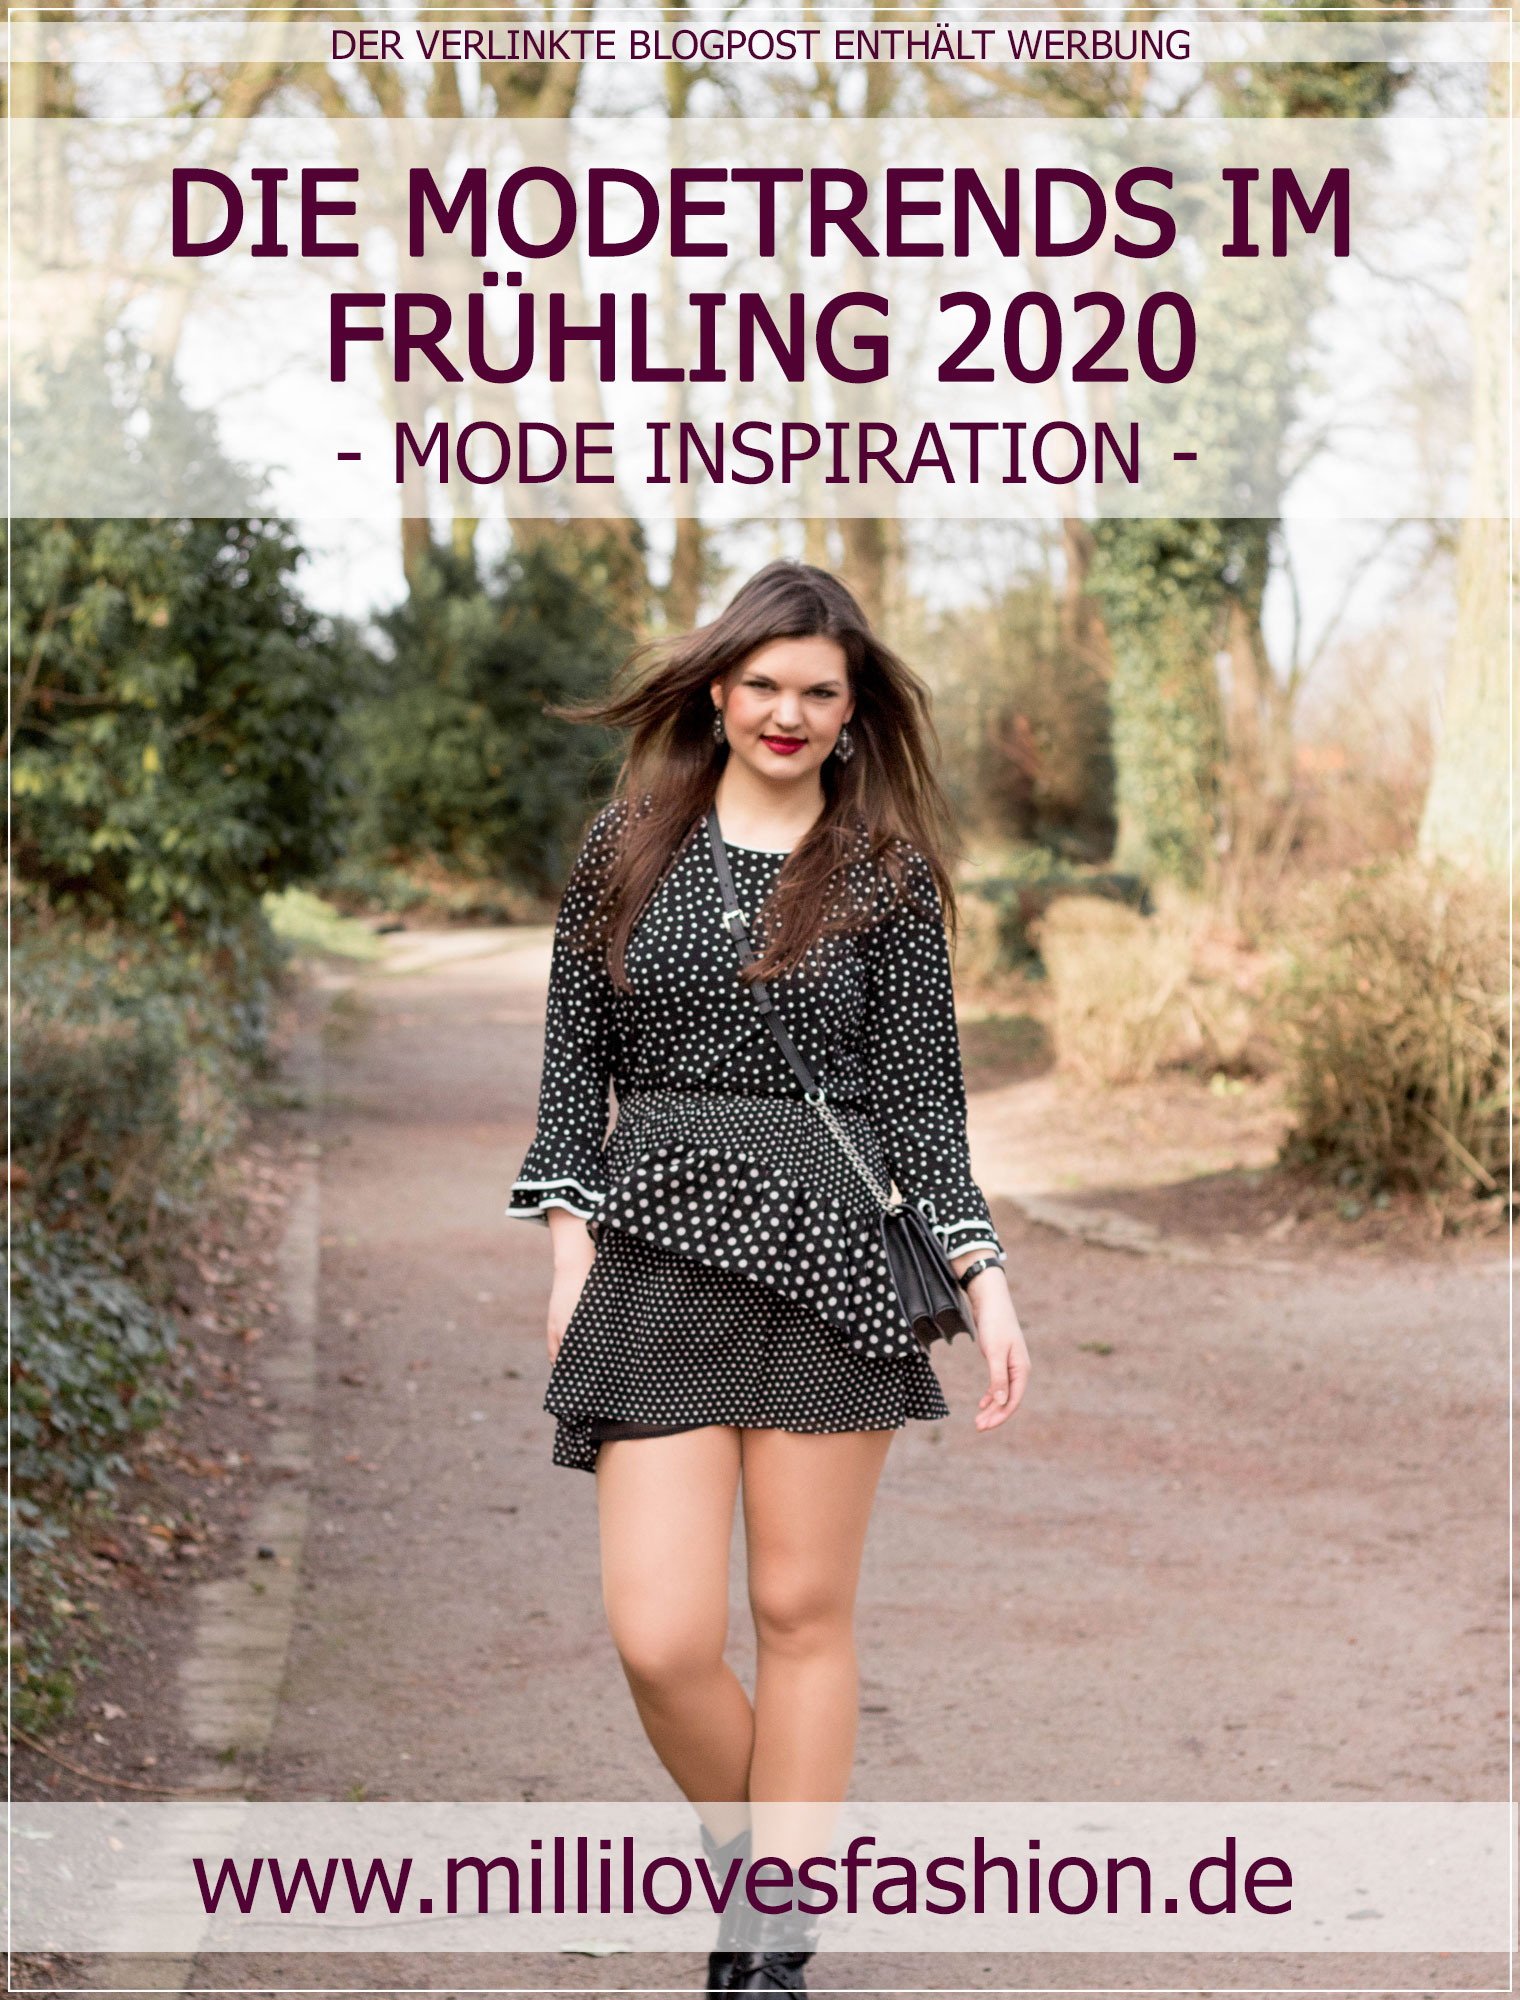 Frühlingstrends, Fashion 2020, Springfashion, Mode 2020 Modetrends, Fashion, Modeblog, Ruhrgebiet, Herbstmode, Bloggerin, Fashionblog